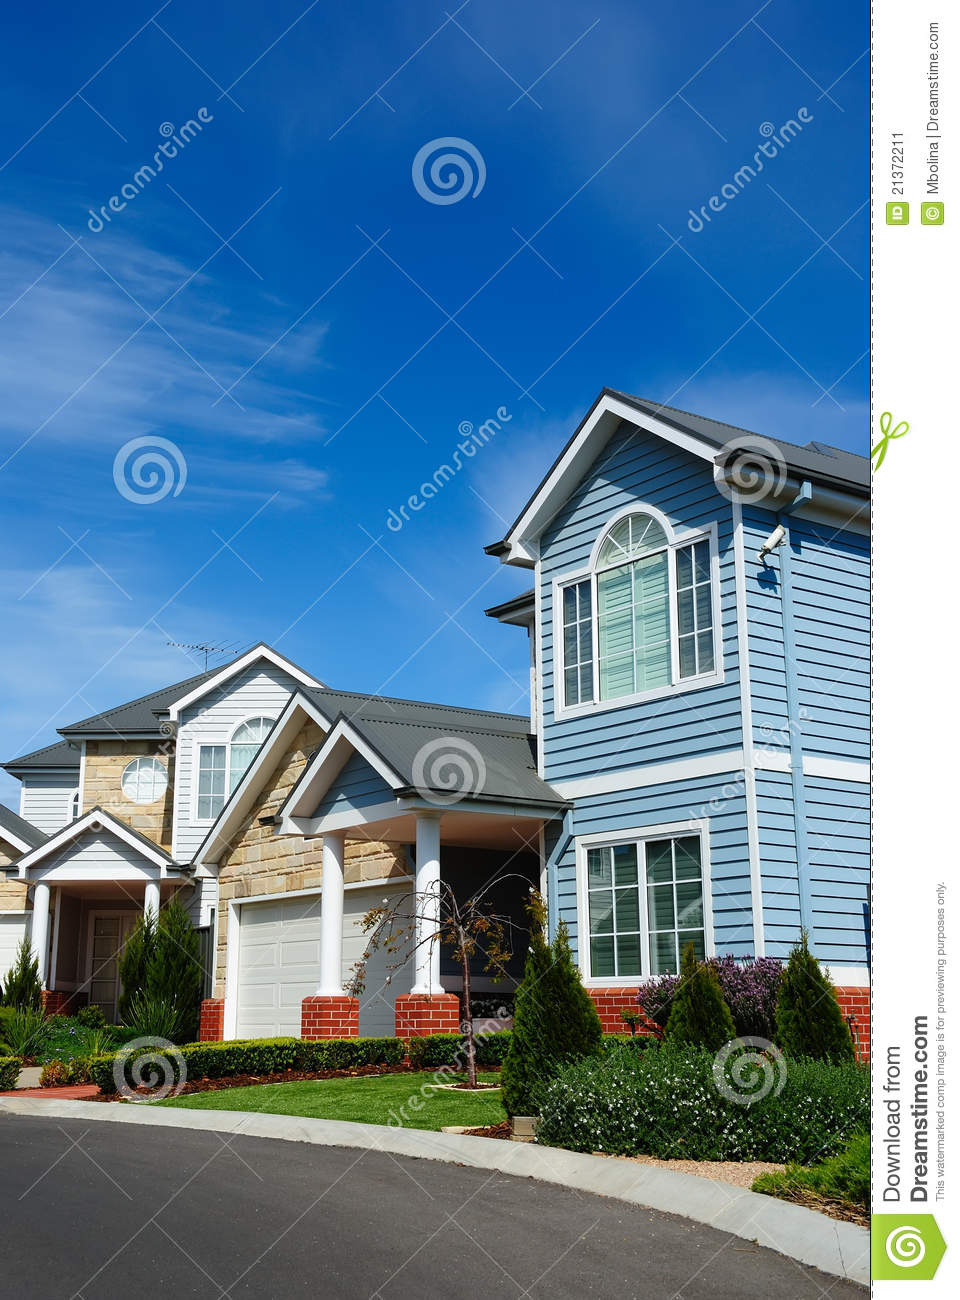 Residential Building Exterior Design Stock Image Image